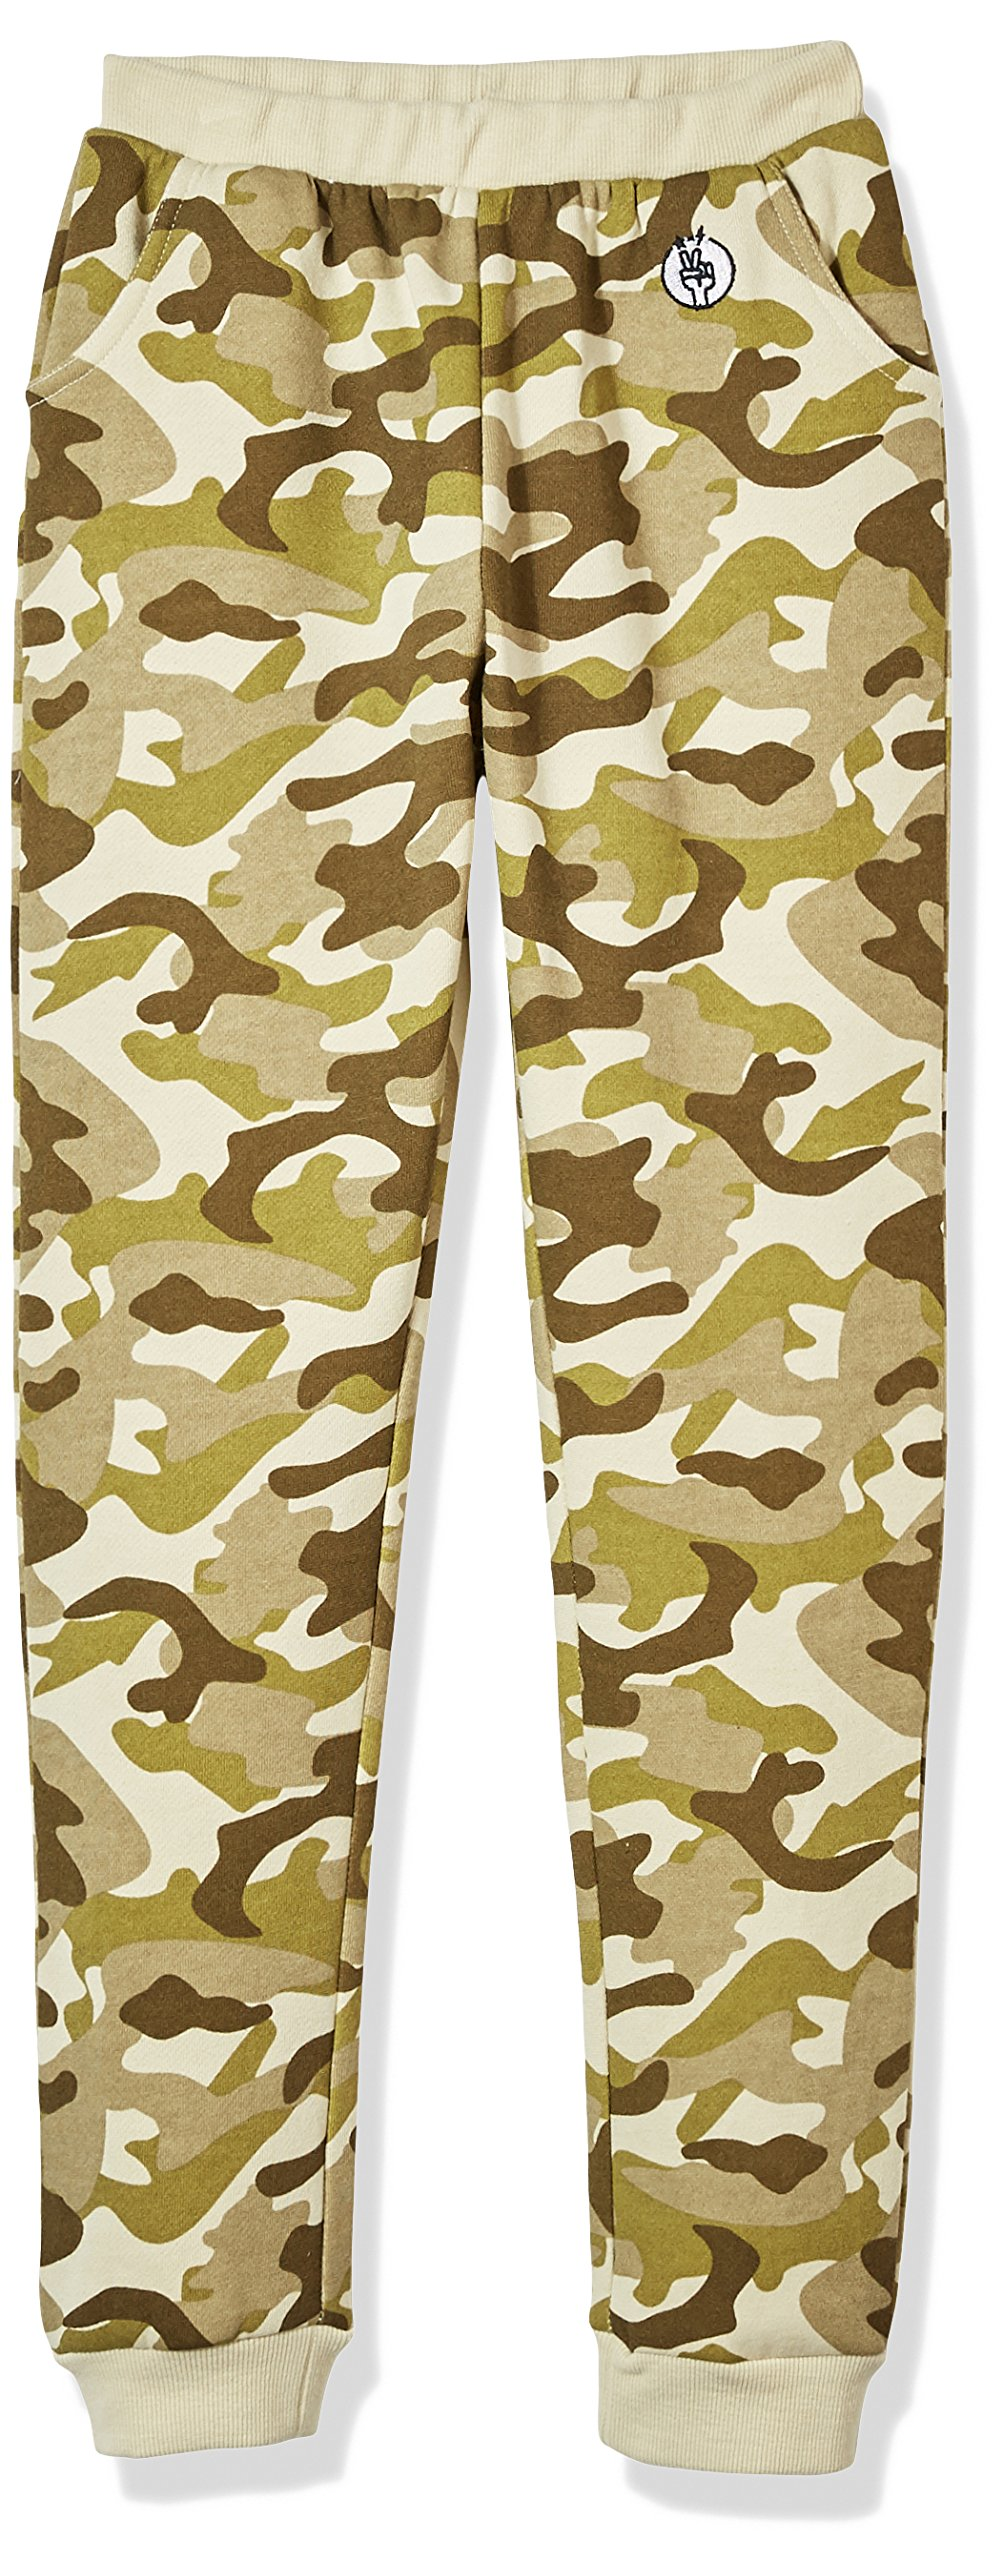 Kid Nation Kid's Camo Causal Jogger Pants for Boys and Girls L Olive